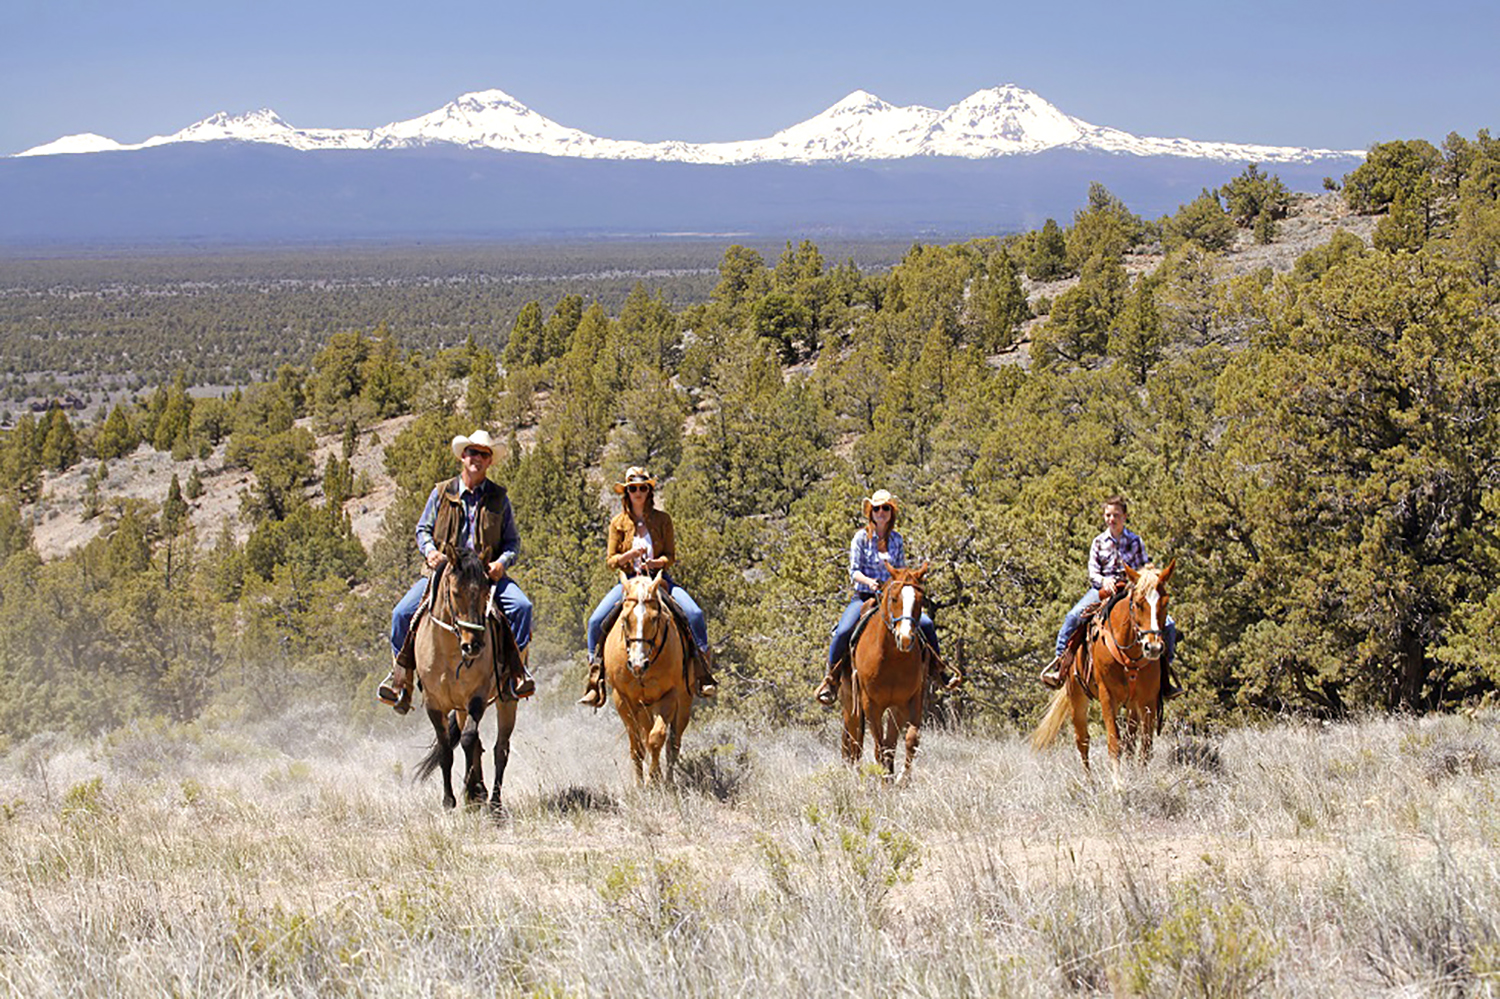 Discover the historic ranch on horseback and ride deep into fields of juniper and sage with the snow-capped Cascades as a backdrop.